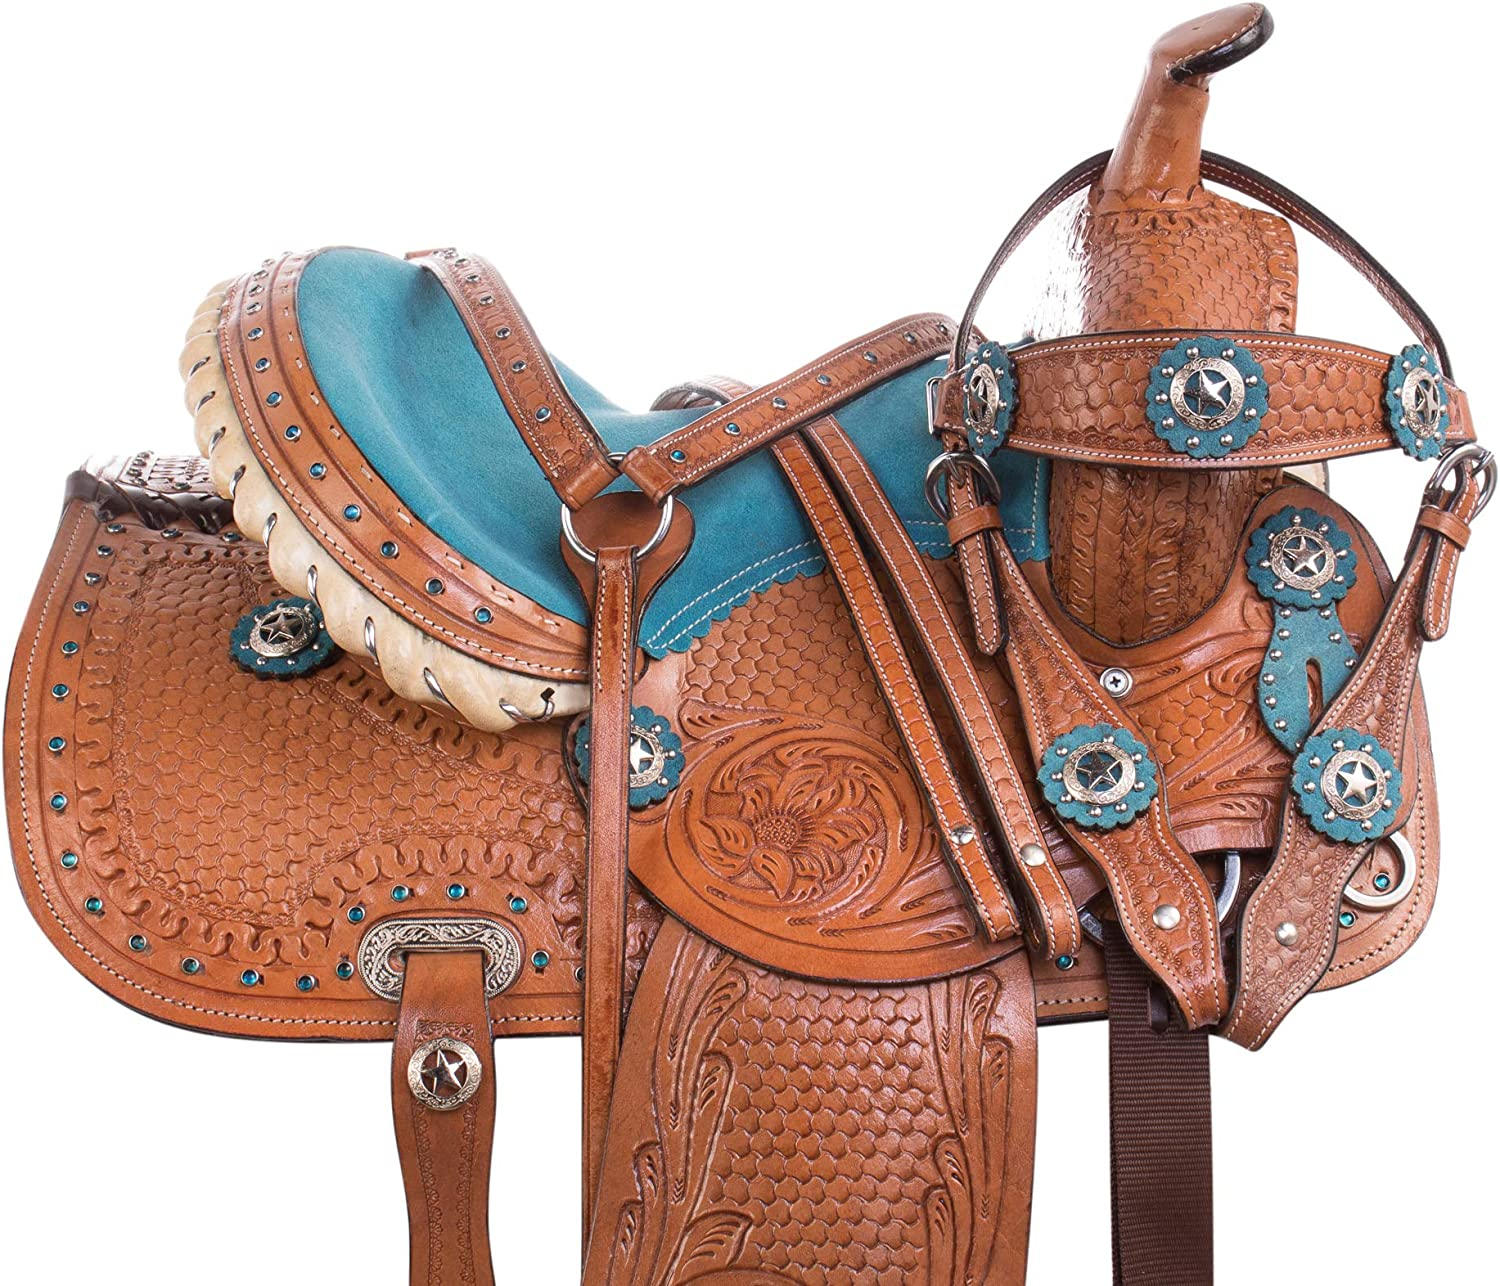 Acerugs Western Pony Horse Leather Saddle TACK Blue Pleasure Trail Barrel Racing Racer Show 10 12 13 14